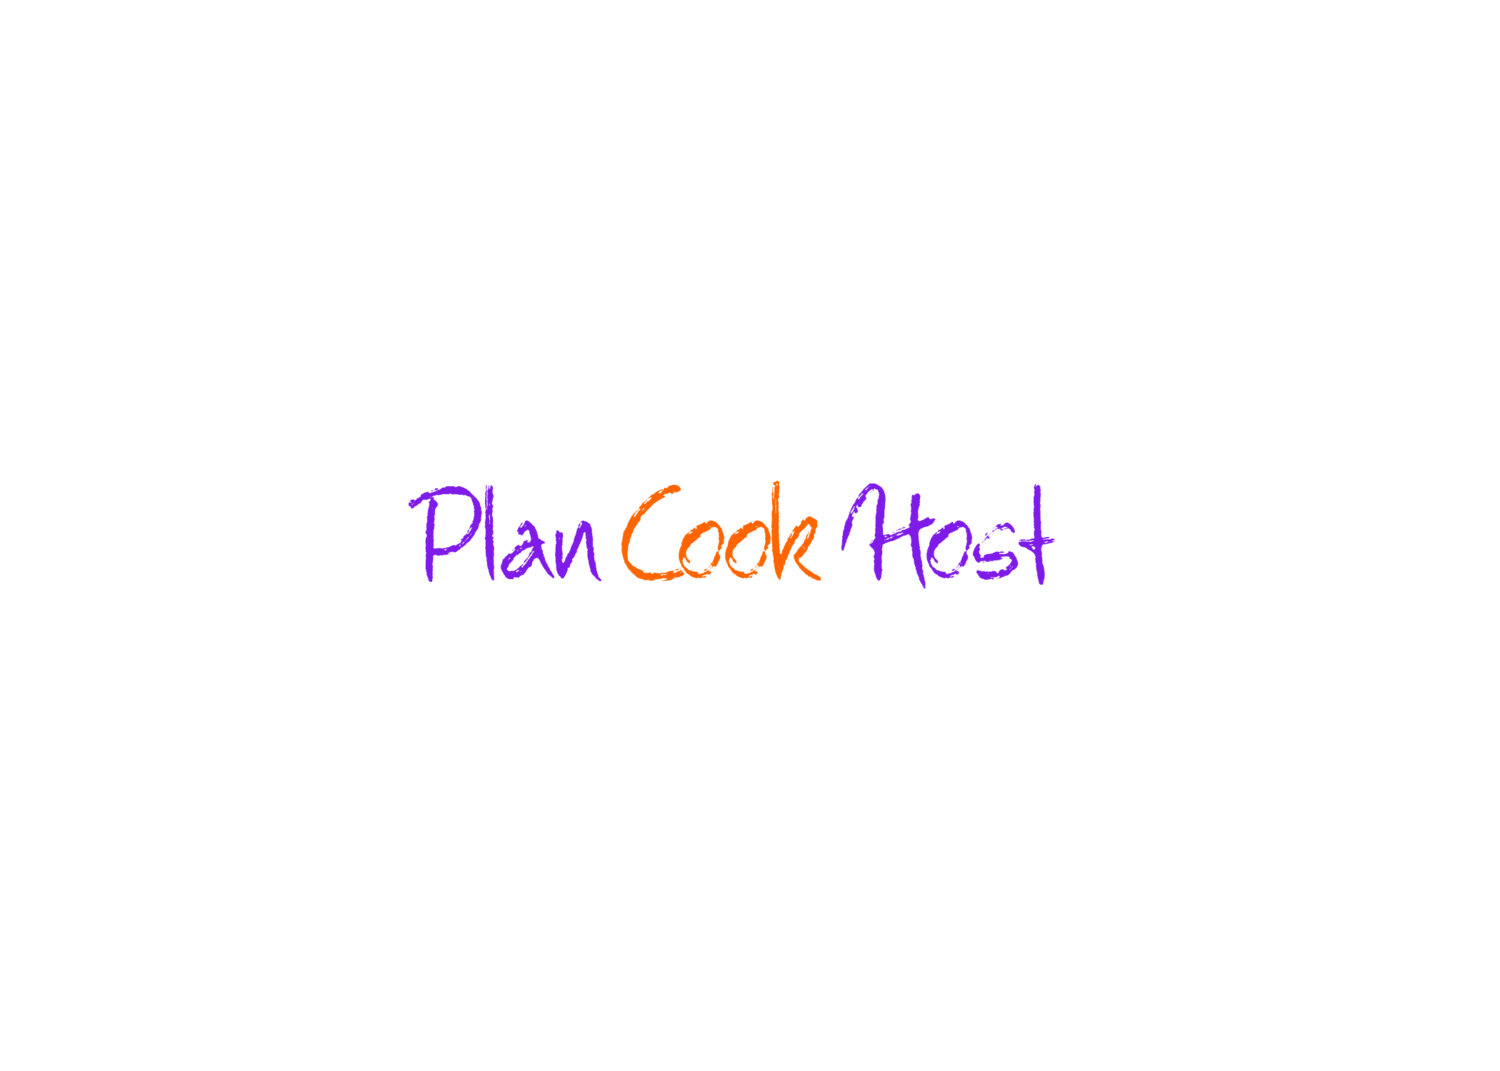 Plan + Cook + Host